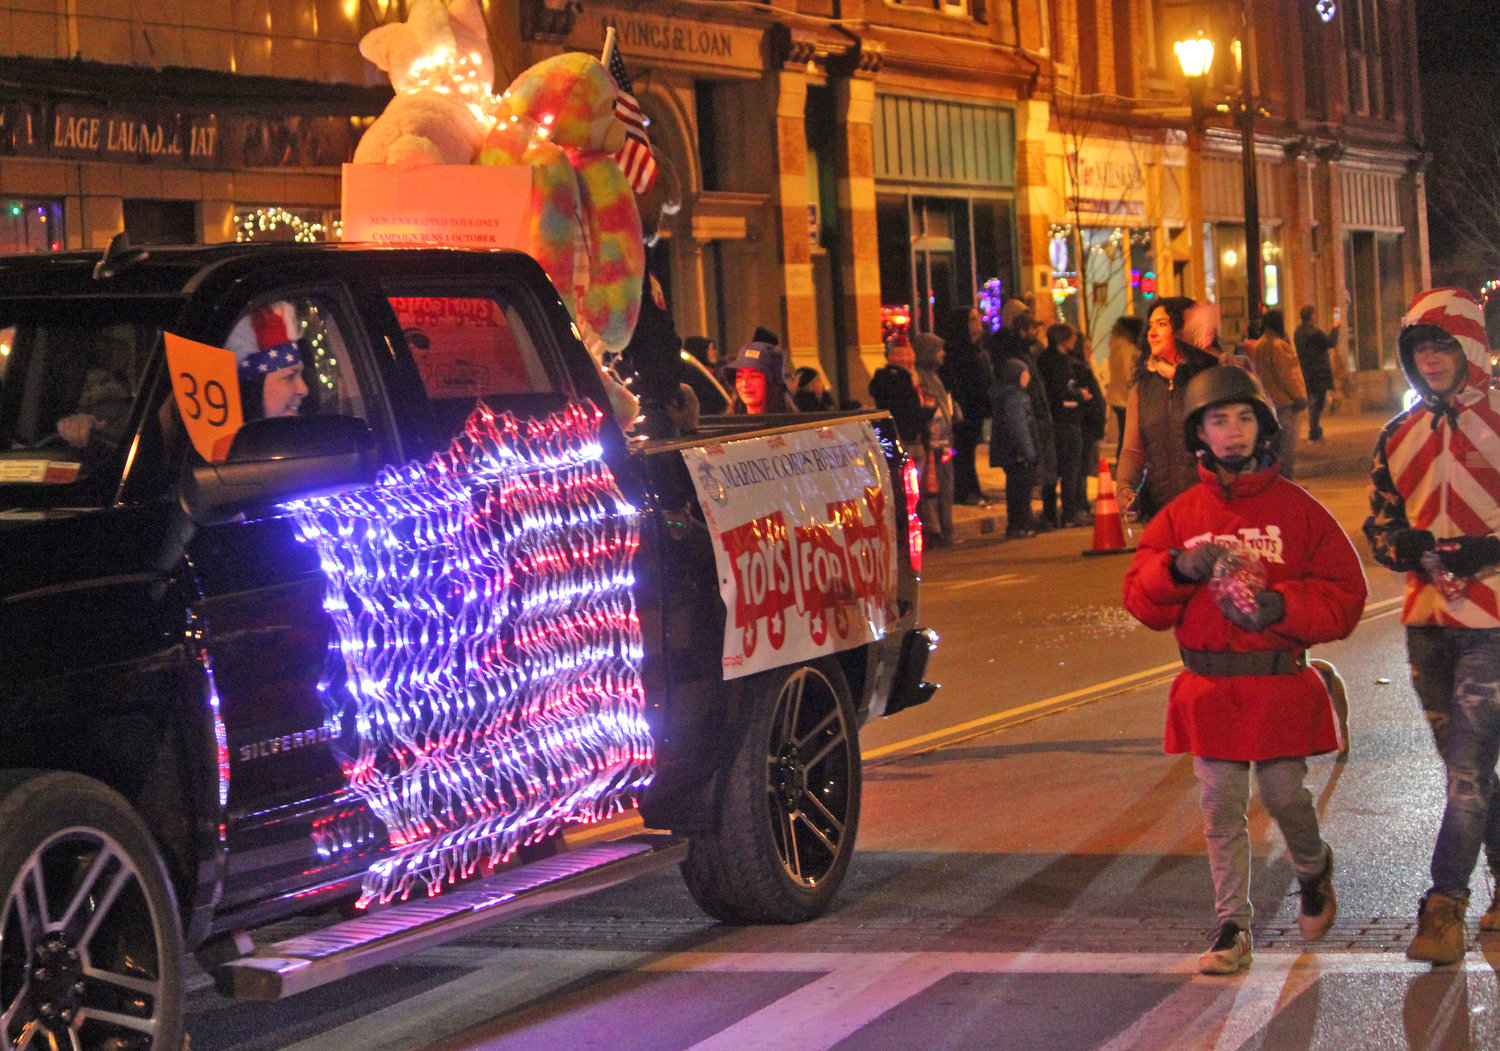 HOLIDAY SPIRIT — Towns, villages and organizations from all over join in to welcome the season of giving for the second annual Canastota Parade of Lights on Saturday, Nov. 30.